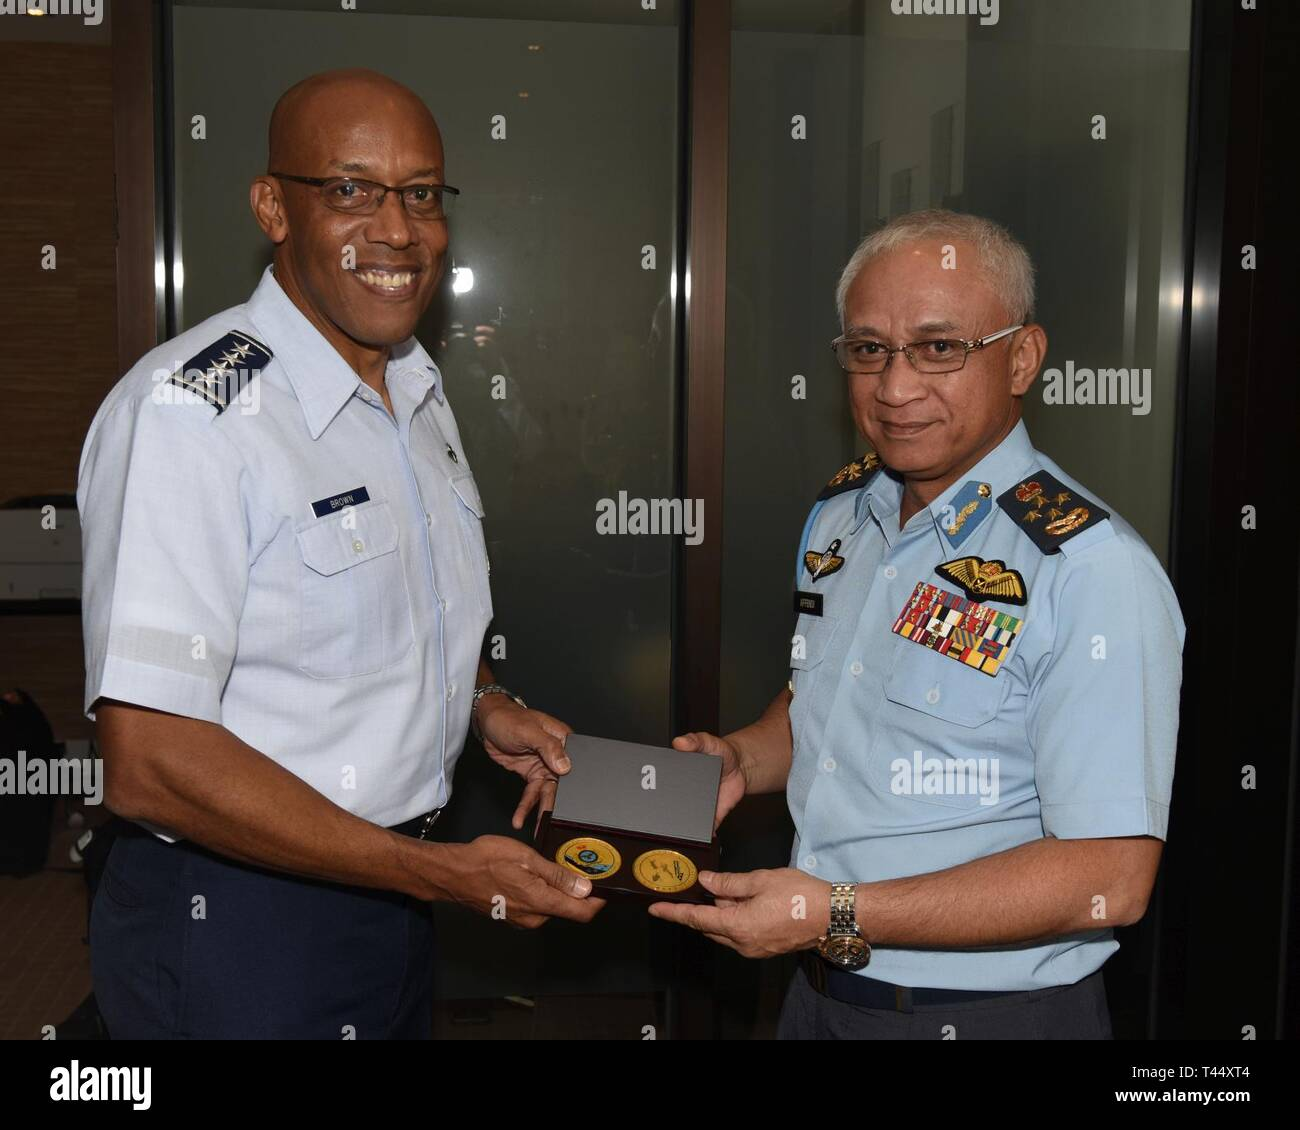 U.S. Air Force Gen. CQ Brown, Jr., Pacific Air Forces commander, left, presents a coin to Gen. Tan Sri Dato' Sri Hj Affendi bin Buang, Royal Malaysian Air Force chief, following a bilateral meeting in Melbourne, Victoria, Australia, Feb. 24, 2019. The two leaders met ahead of the 2019 Australian International Aerospace & Defence Exposition and Airshow Stock Photo